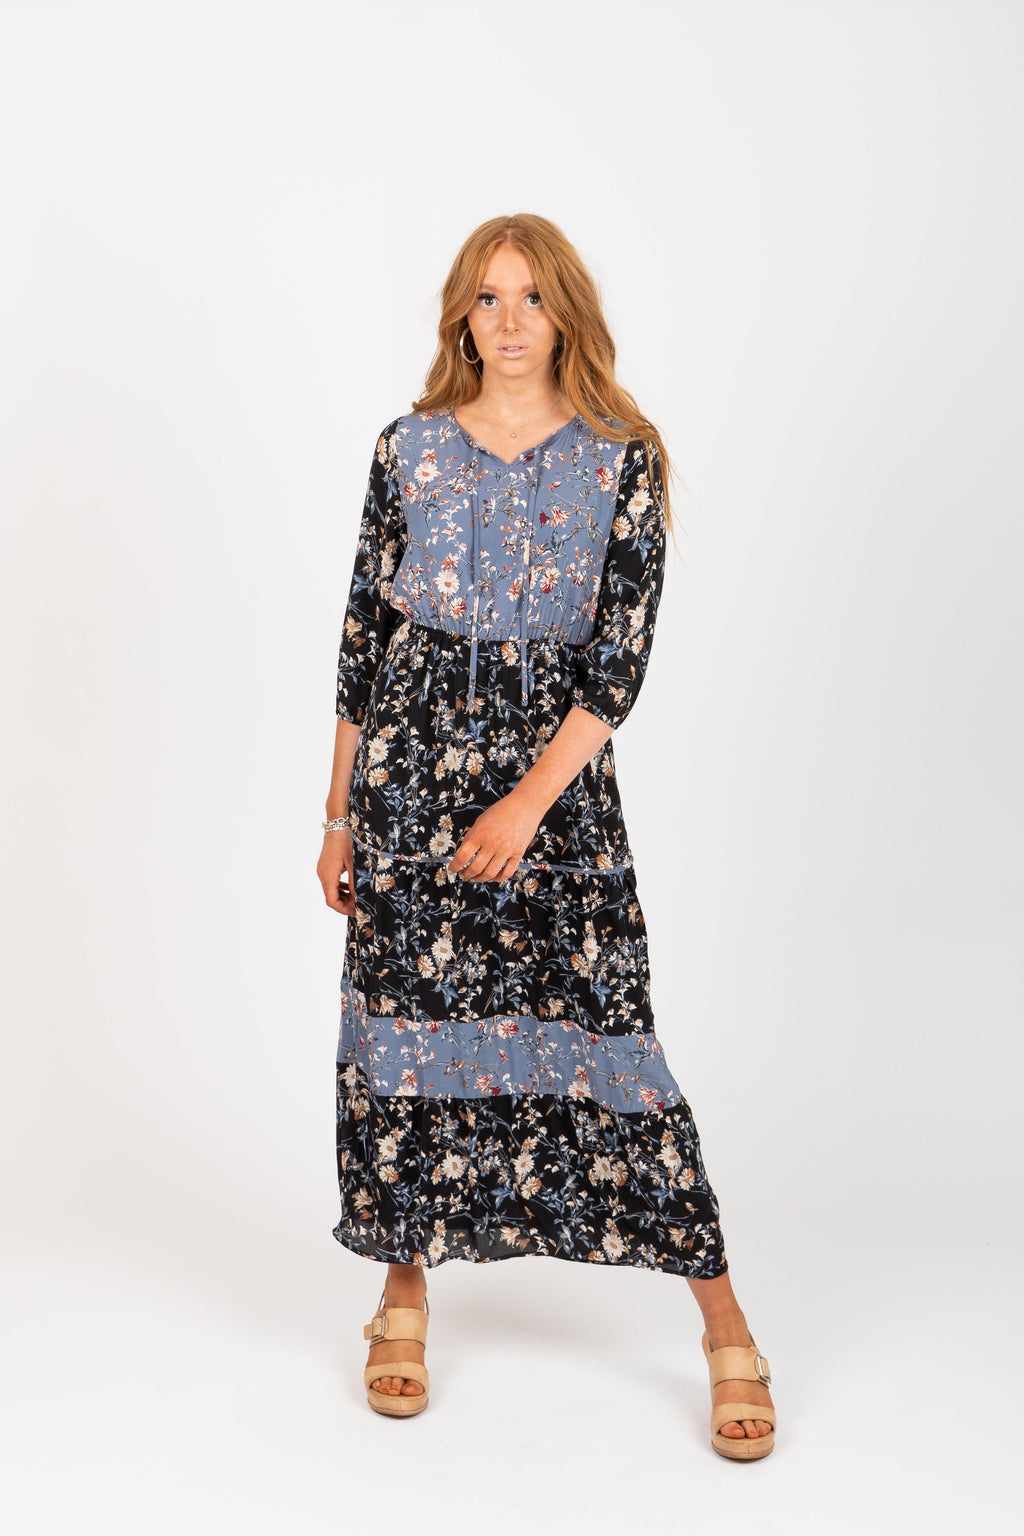 The Haskell Floral Contrast Maxi Dress in Black, studio shoot; front view